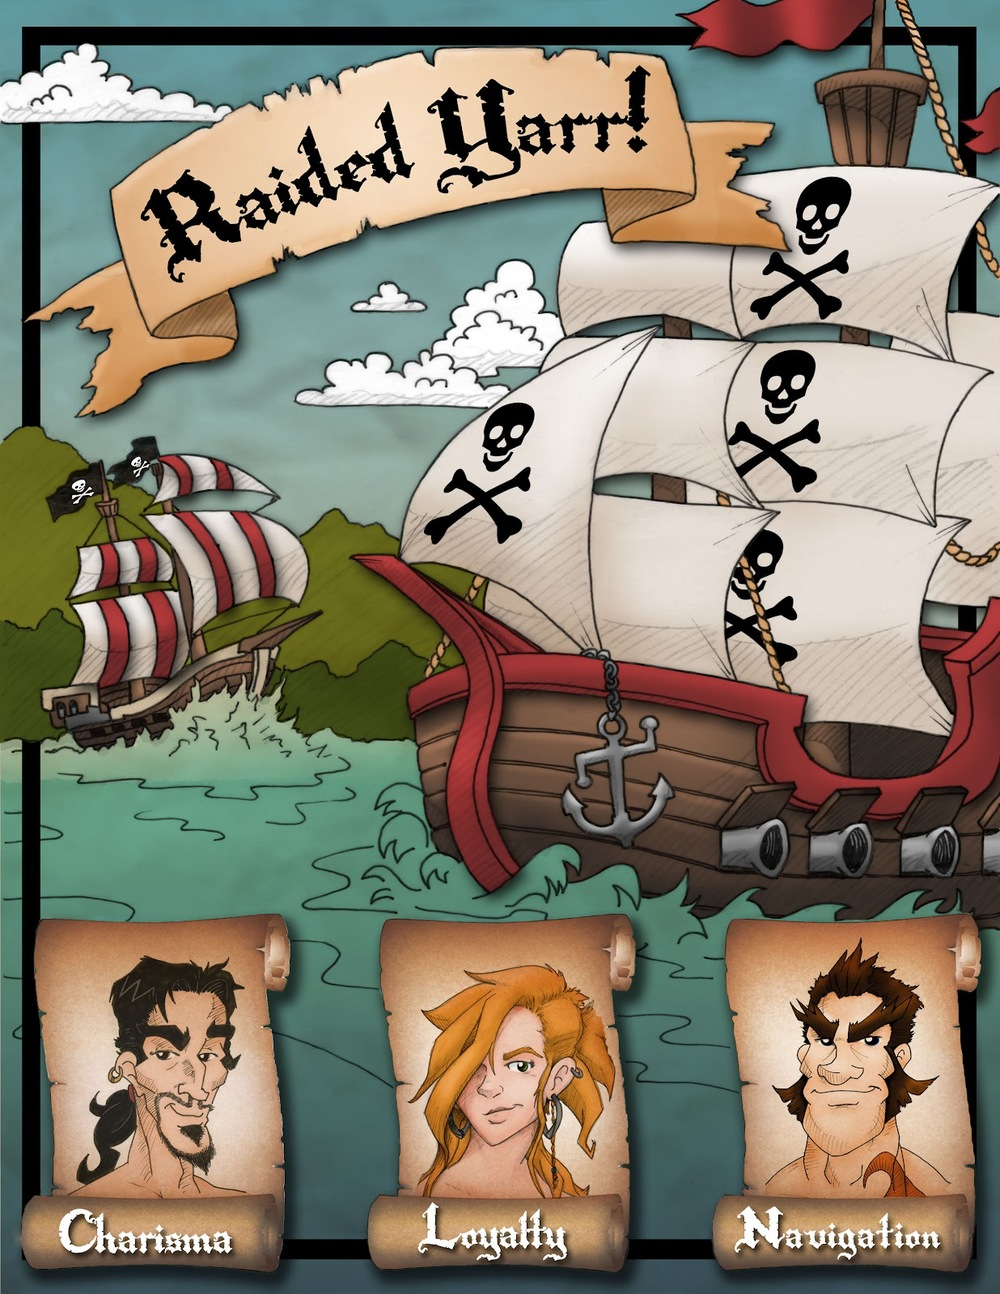 Raided Yarr!